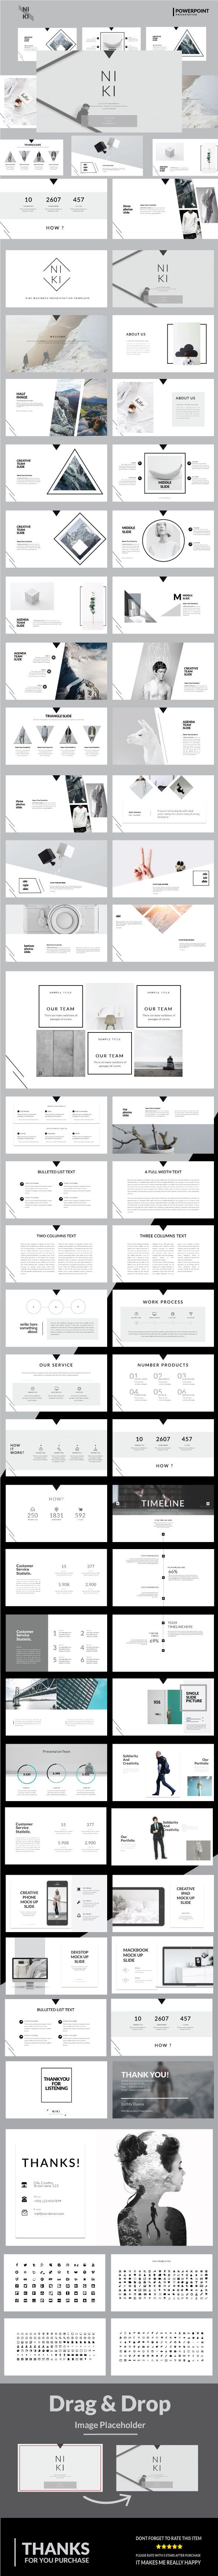 Niki Multipurpose Powerpoint Template. Download: https://graphicriver.net/item/niki-multipurpose-powerpoint-template/19448510?ref=thanhdesign